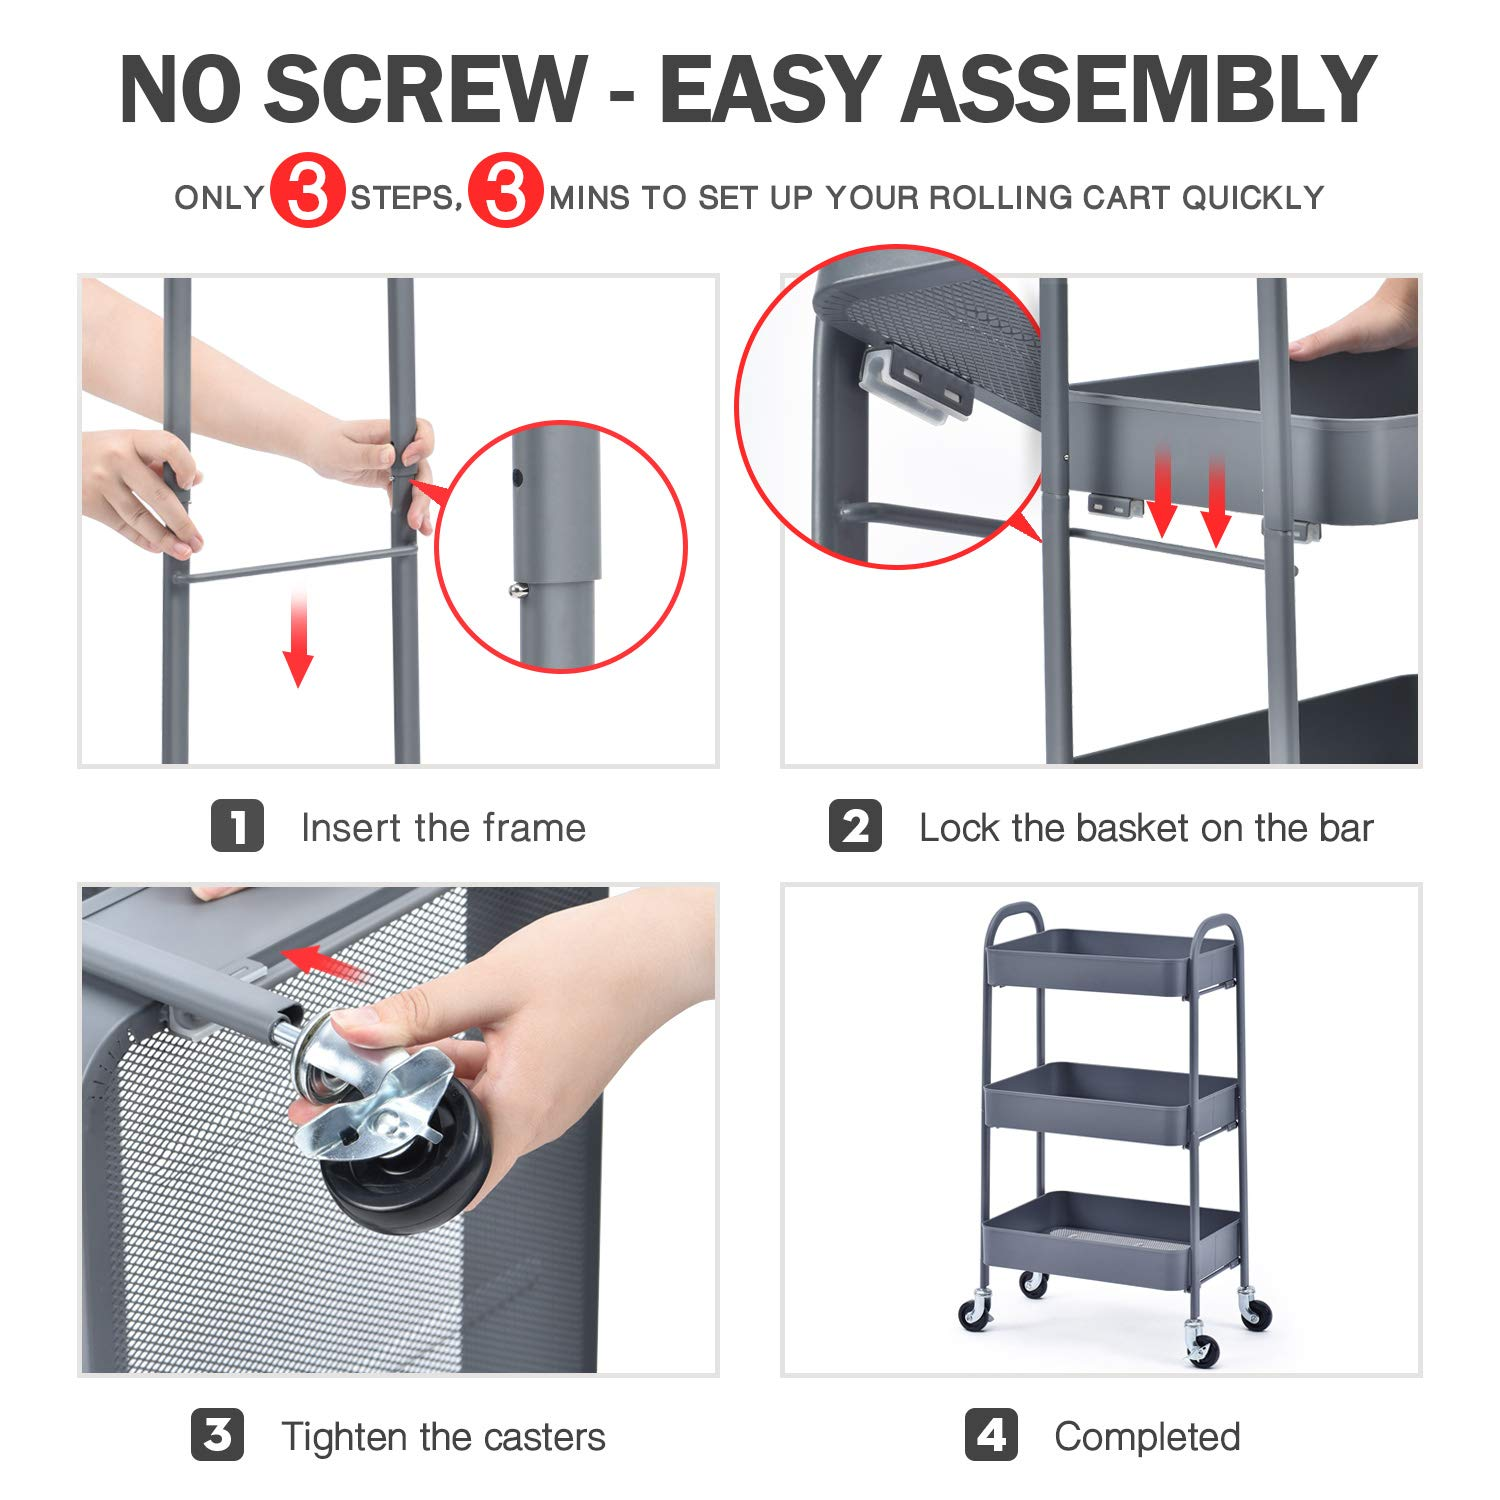 Locking Wheels,for Kitchen Garage Home Bedroom Bathroom KINGRACK 3 Tier Rolling Cart Grey Easy Assemble Utility Serving Cart,Sturdy Storage Trolley with Handles No Screw Metal Utility Cart